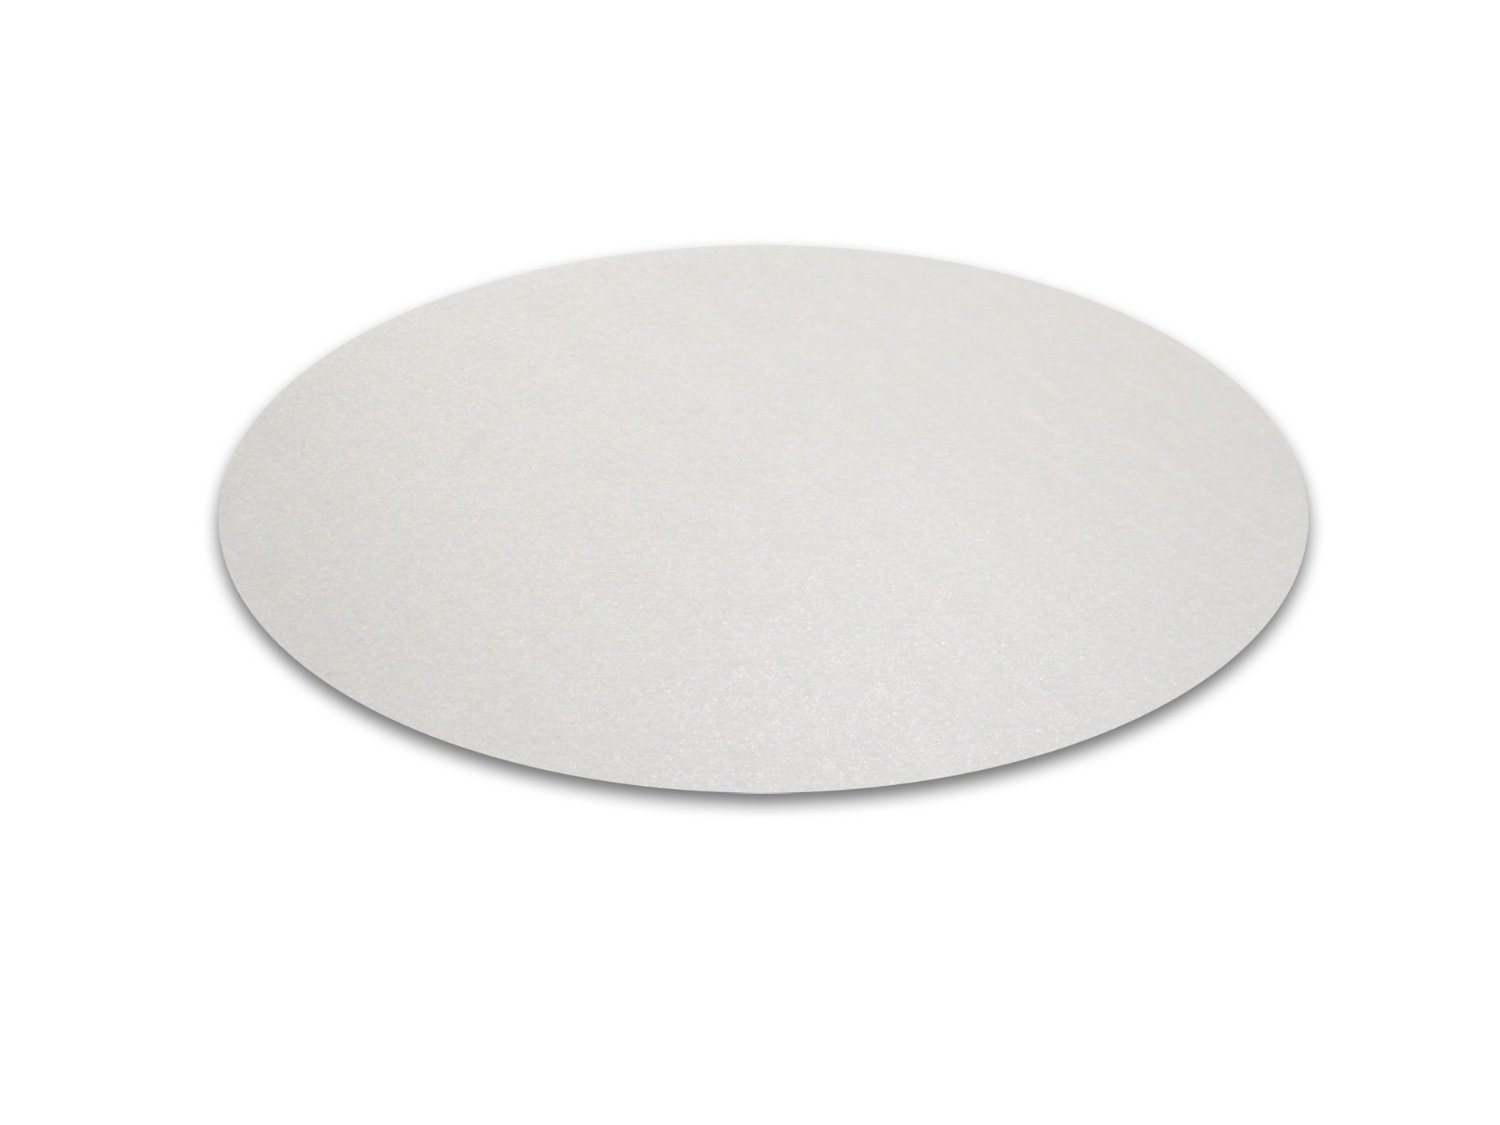 OLizee Clear Multitask Polycarbonate Office Chair Floor Mat for Hardwood and carpet Floors 36 Inch Circular